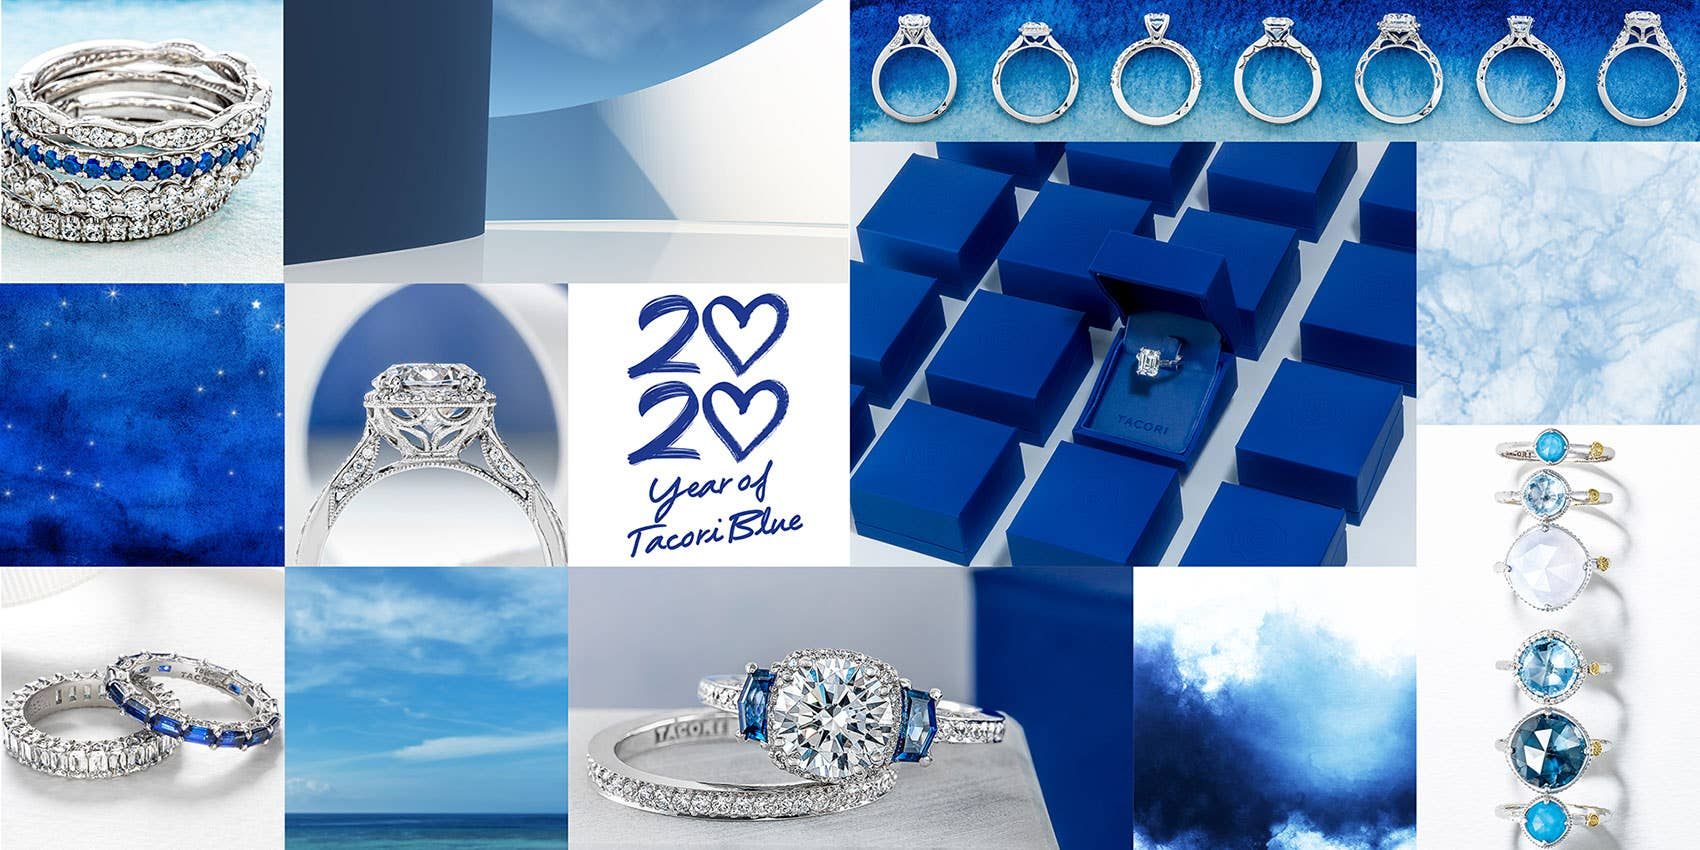 Year of Tacori Blue